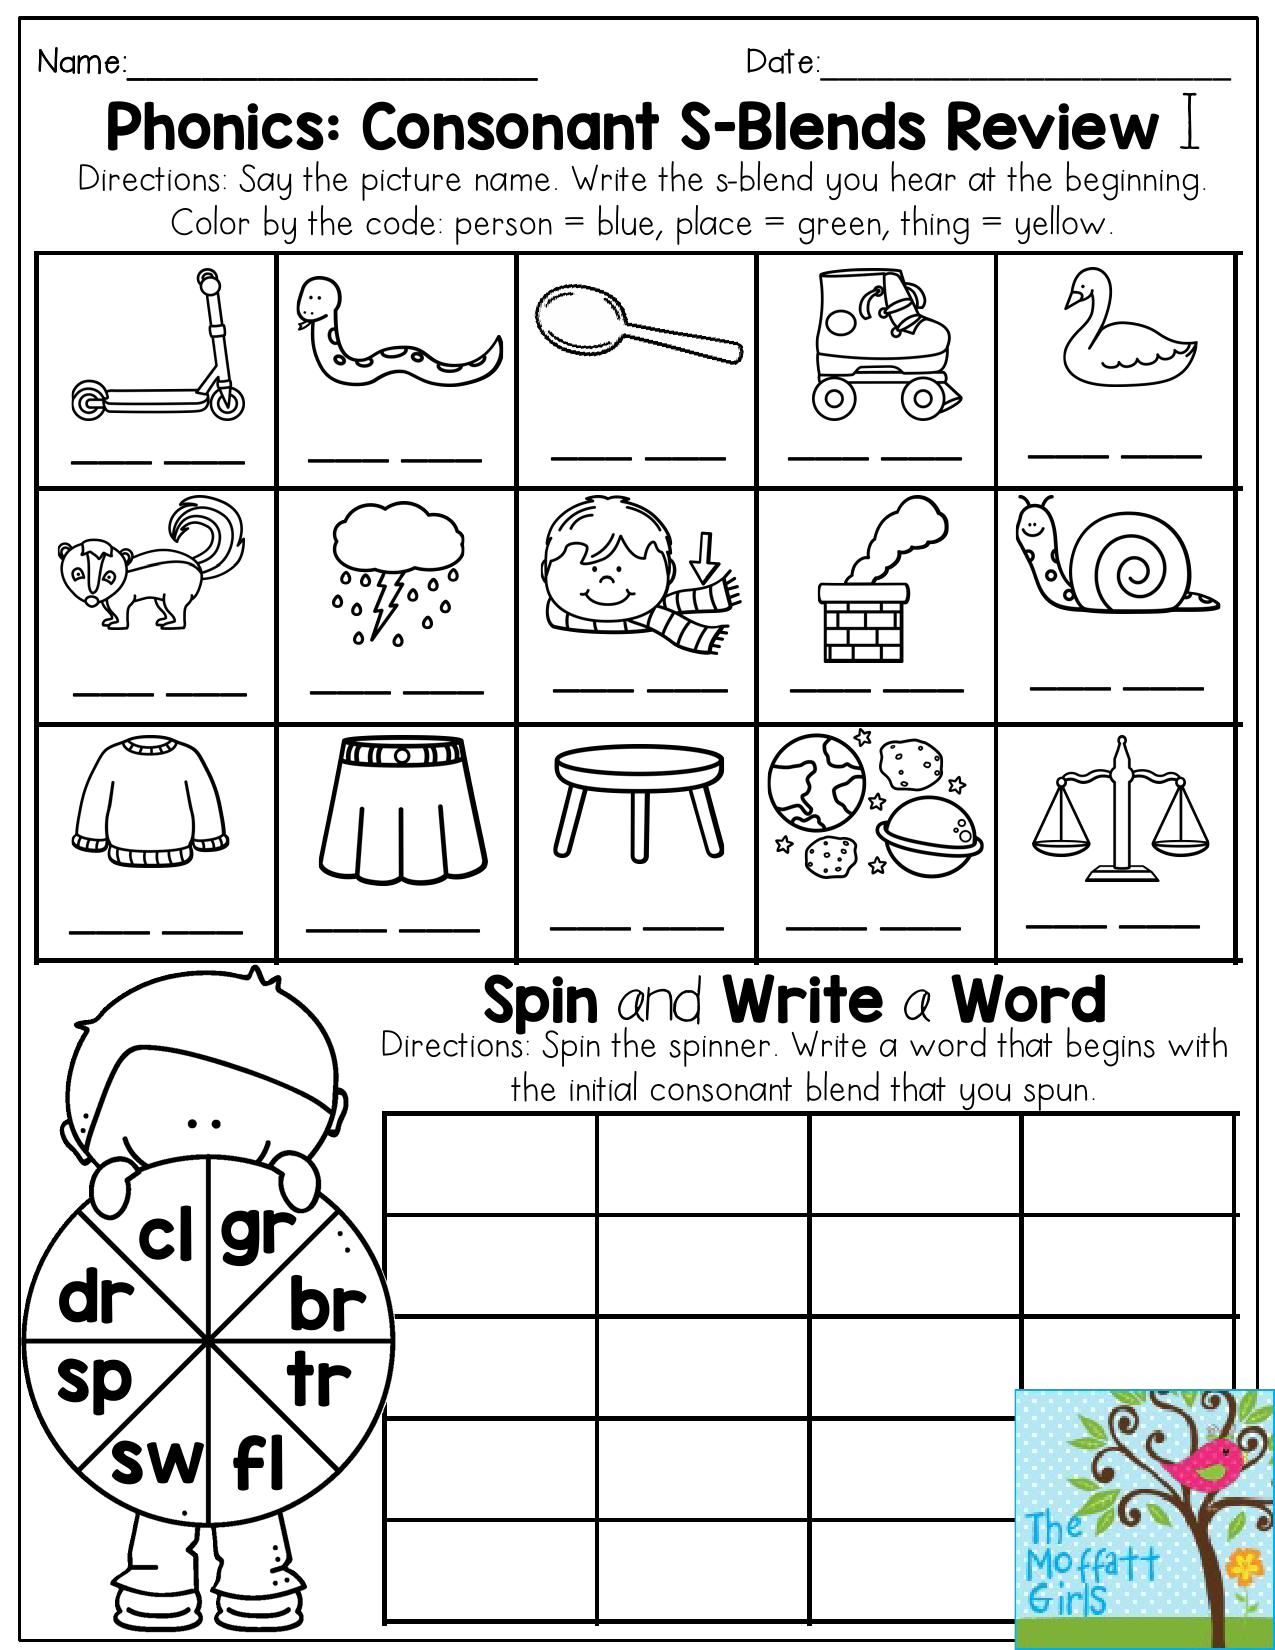 Phonics Consonant S Blends Review Write The S Blend That You Hear At The Beginning Of The Word